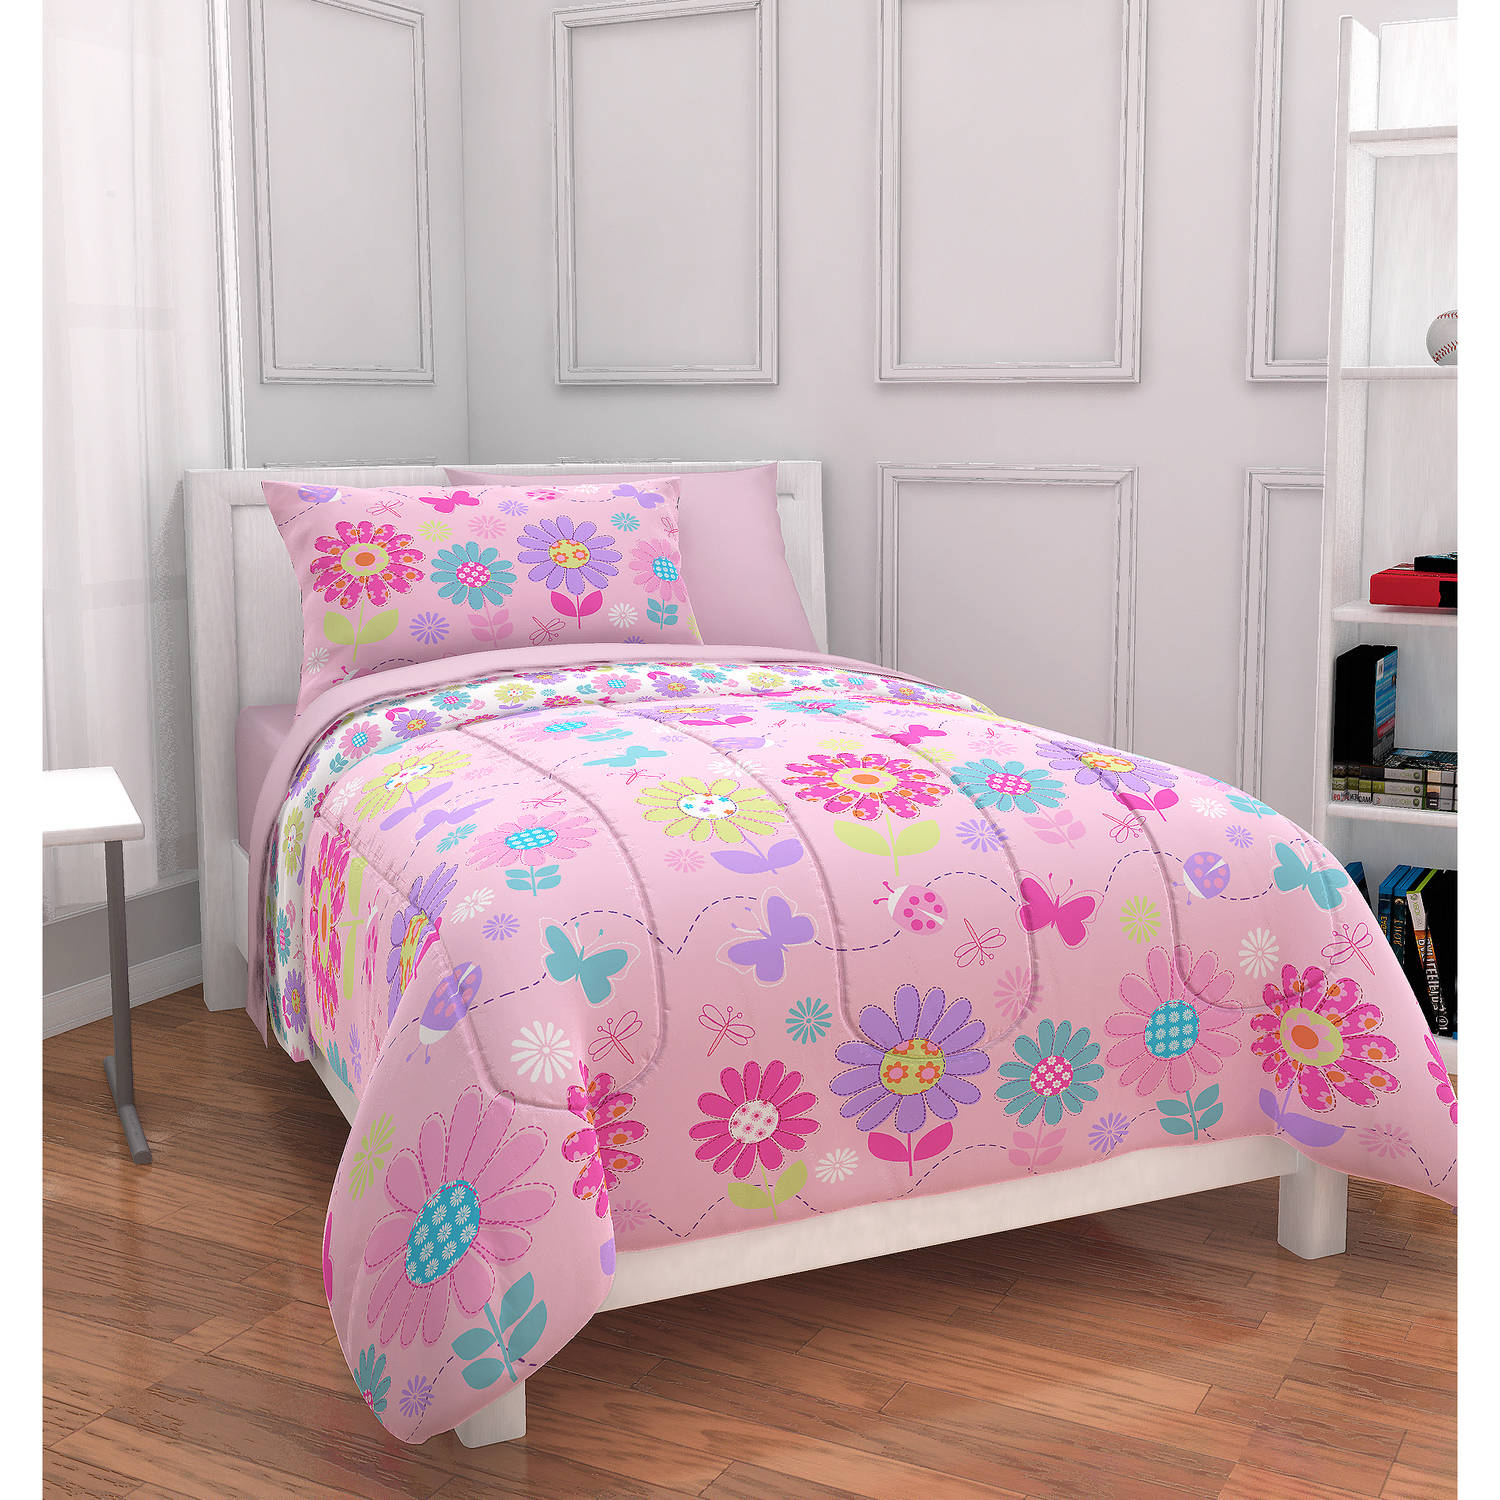 Mainstays Kids Daisy Floral Bed In A Bag Bedding Set Walmart Com